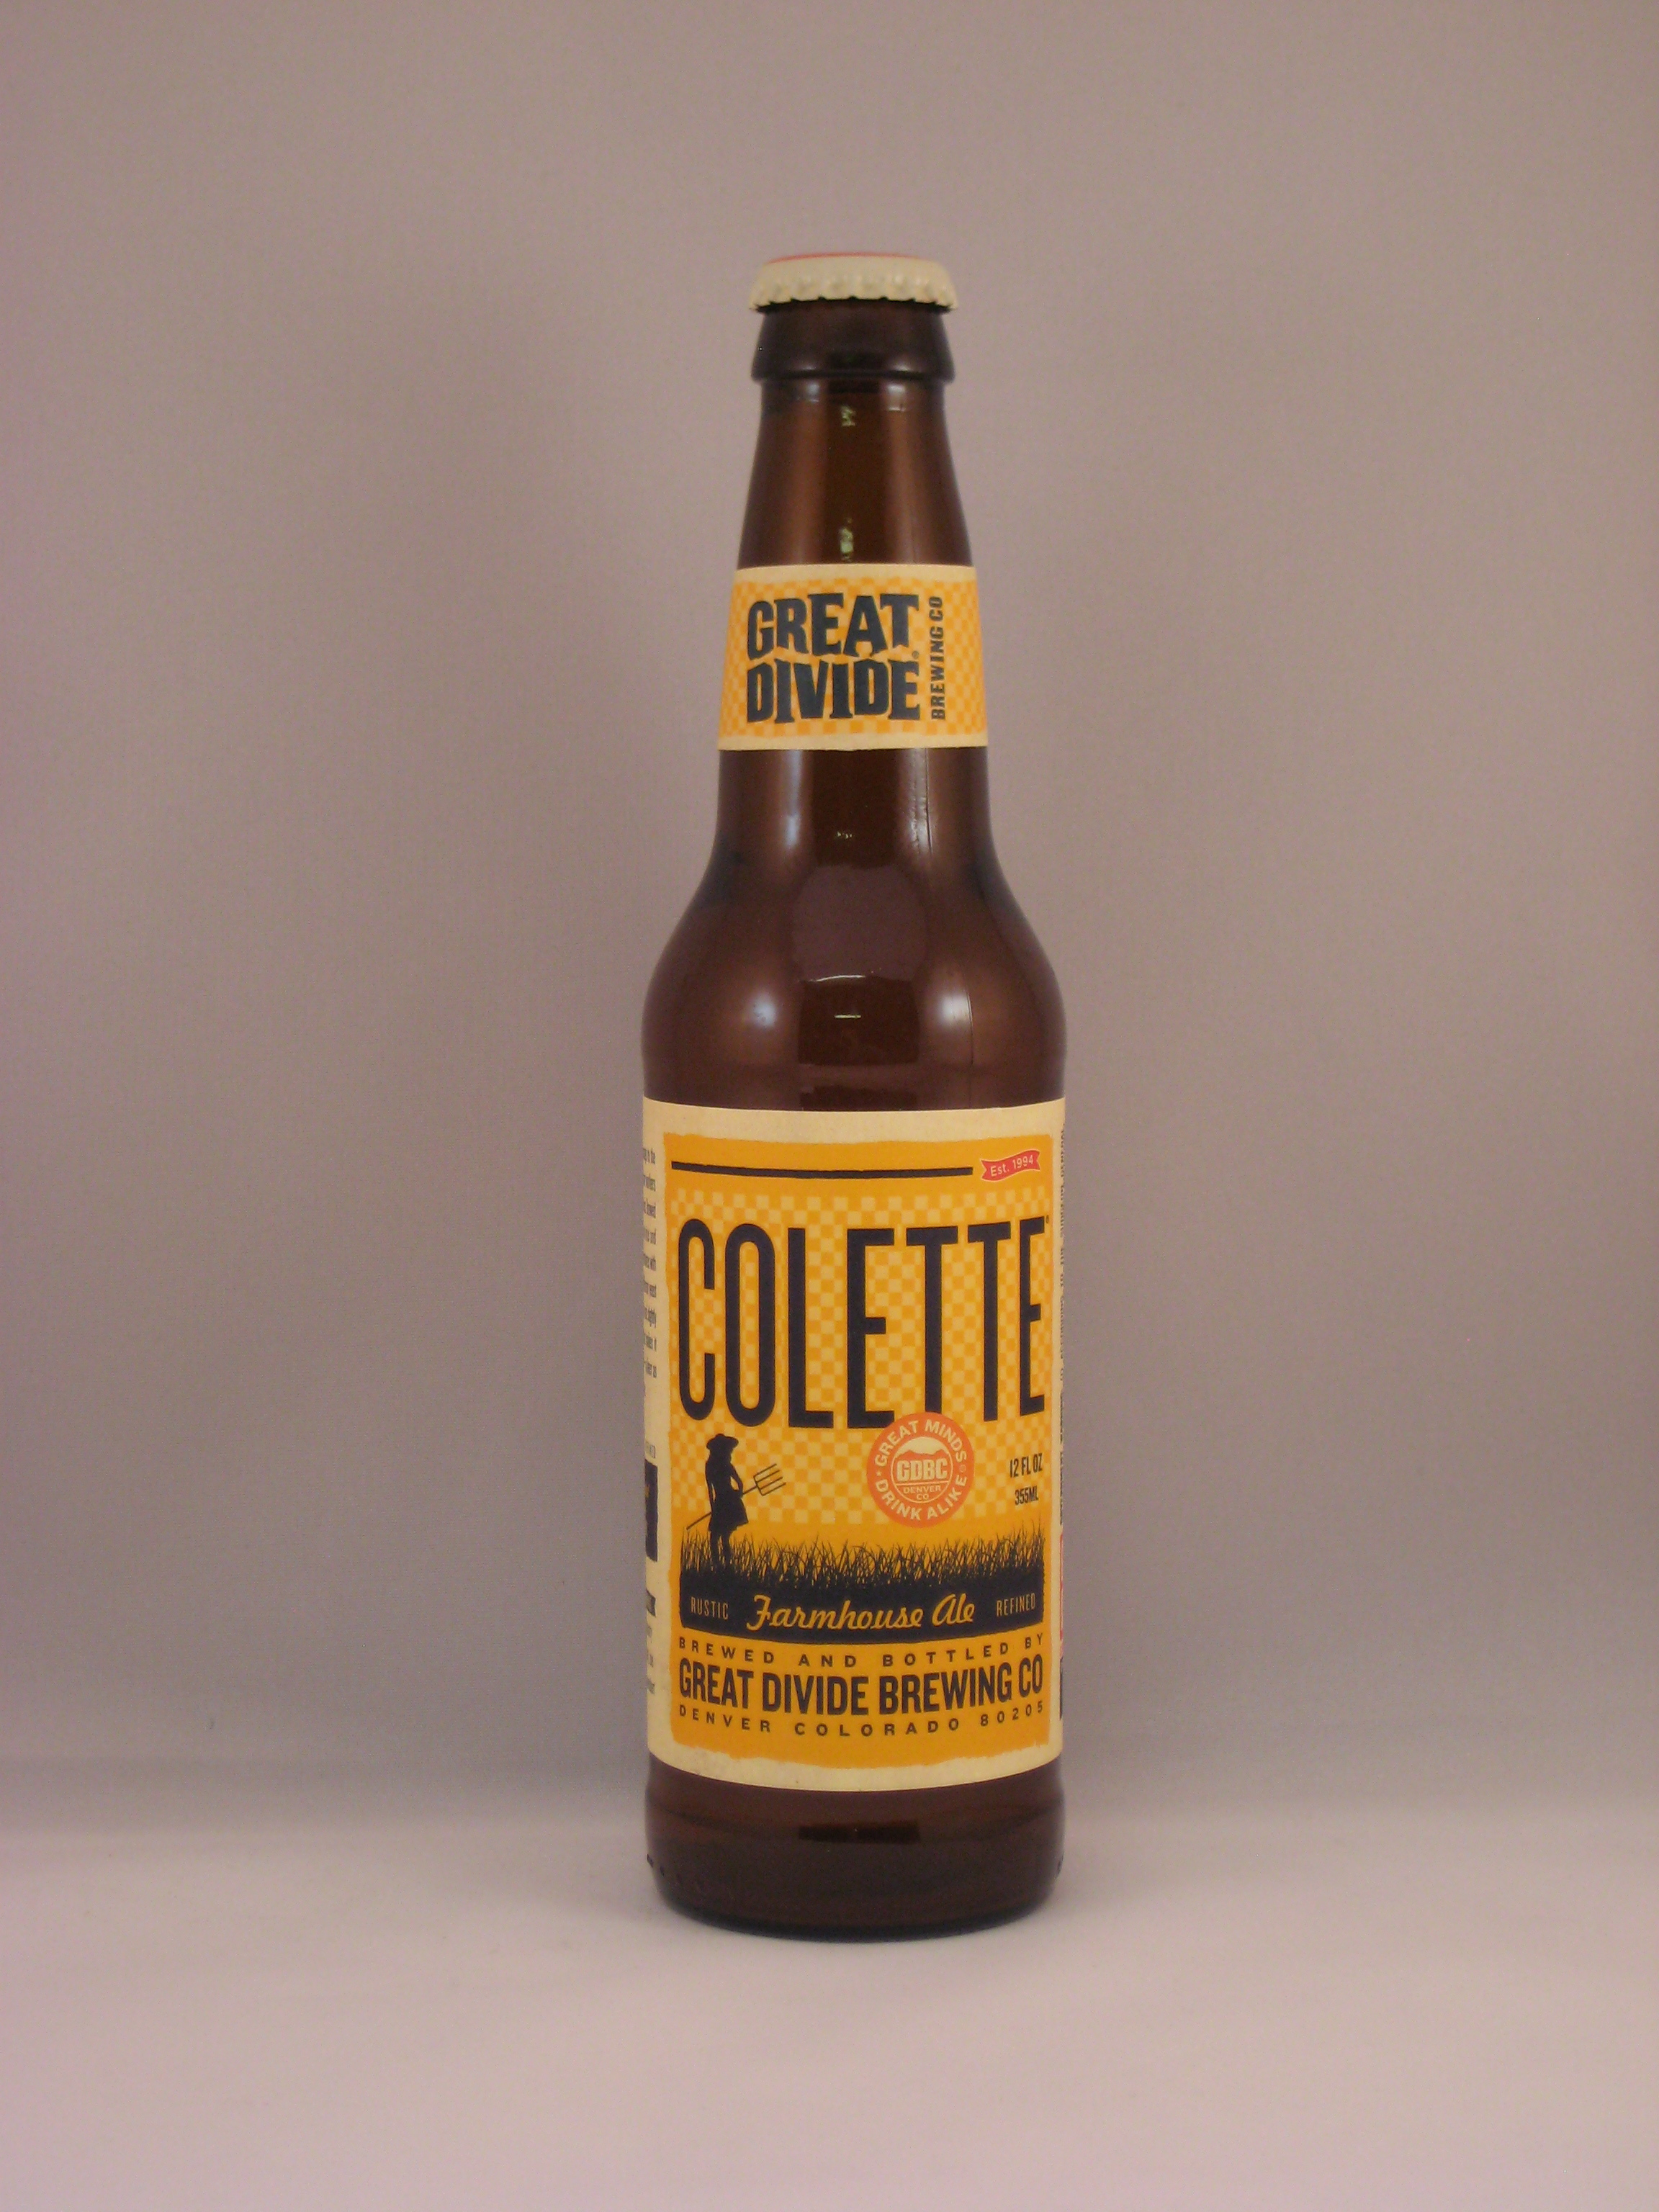 b3a322c377 Great Divide Colette (Saison) by Great Divide Brewing Company.